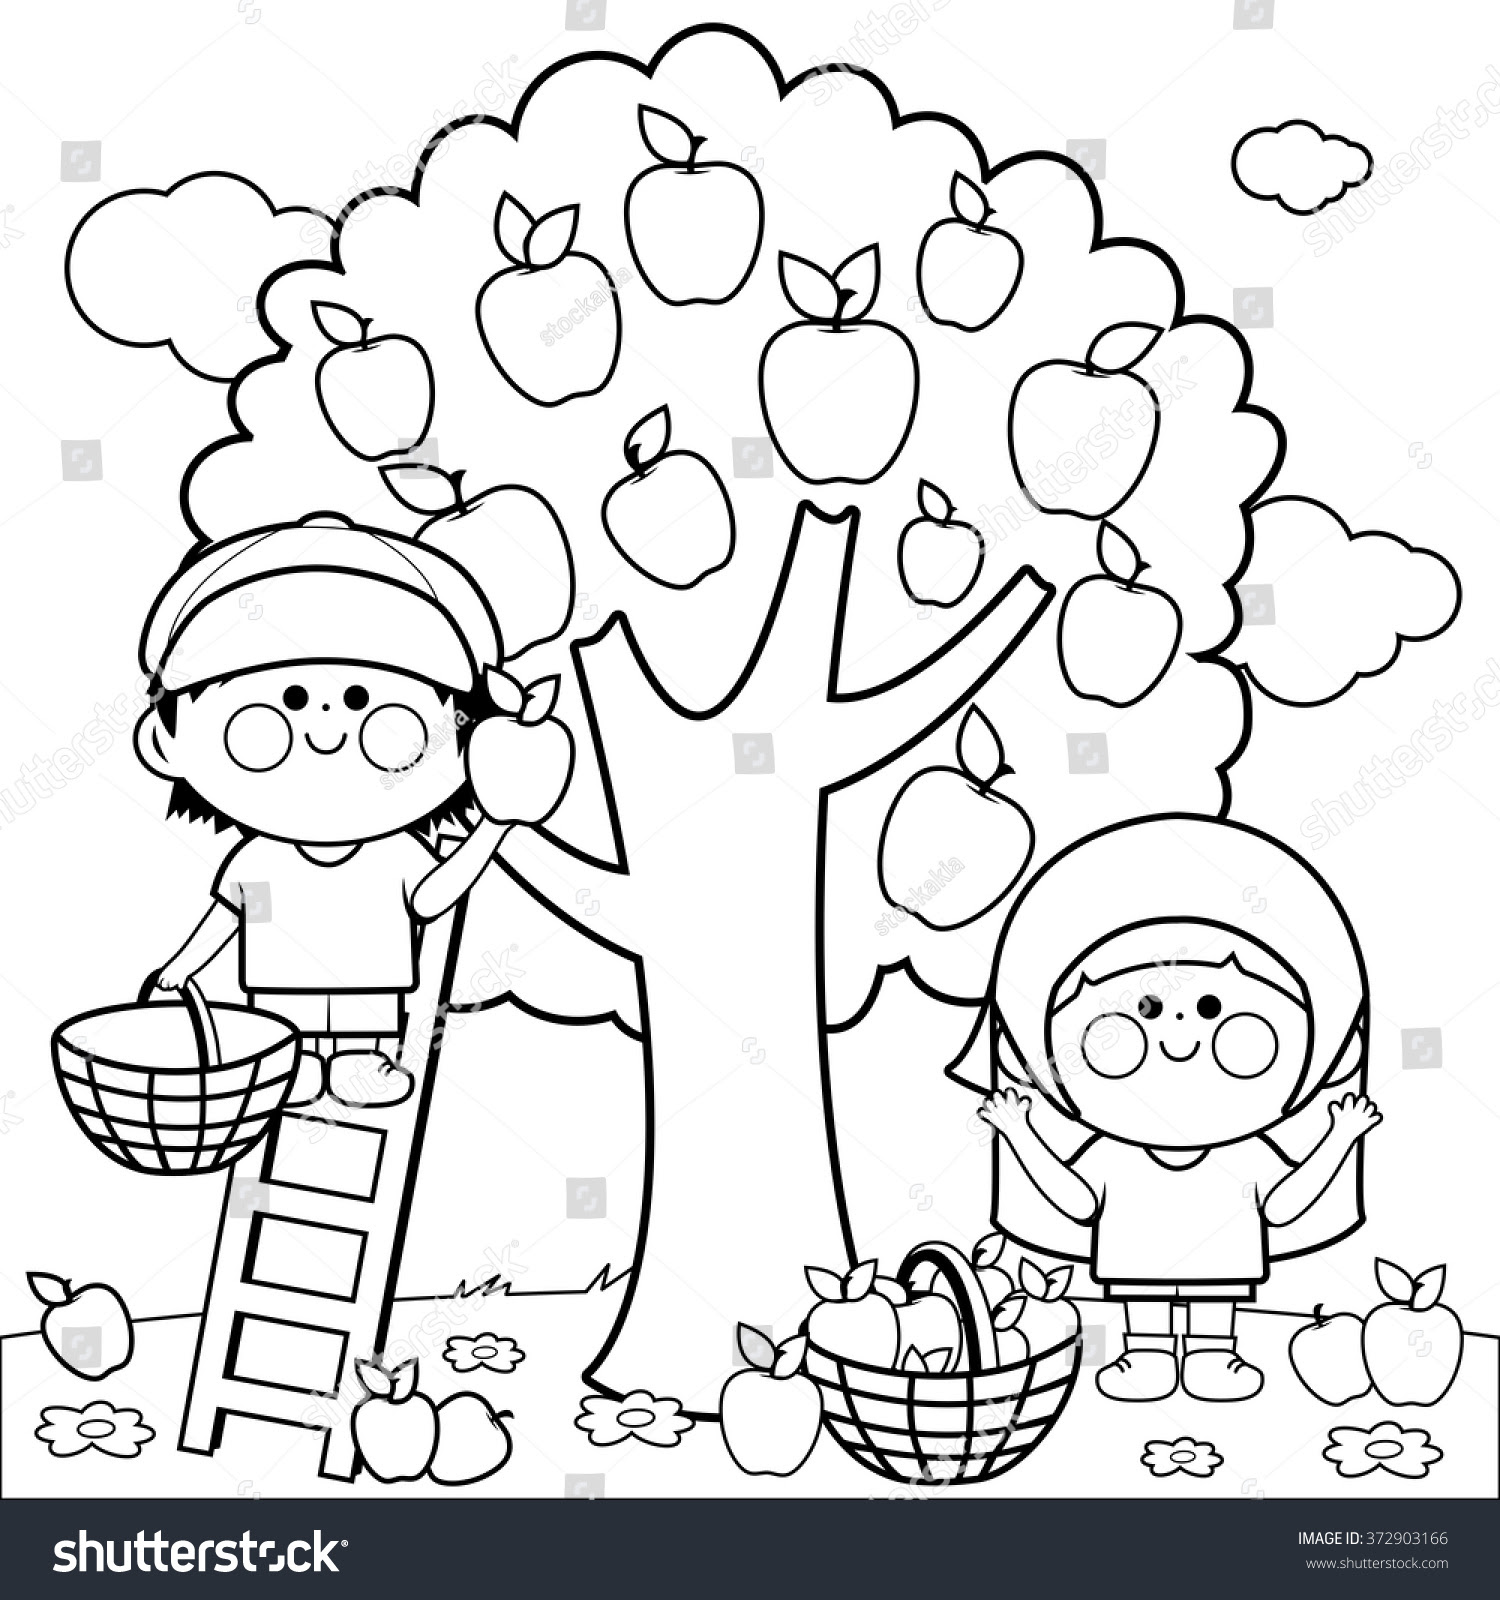 stock vector vector black and white illustration of two children a boy and a girl picking apples under a tree 372903166